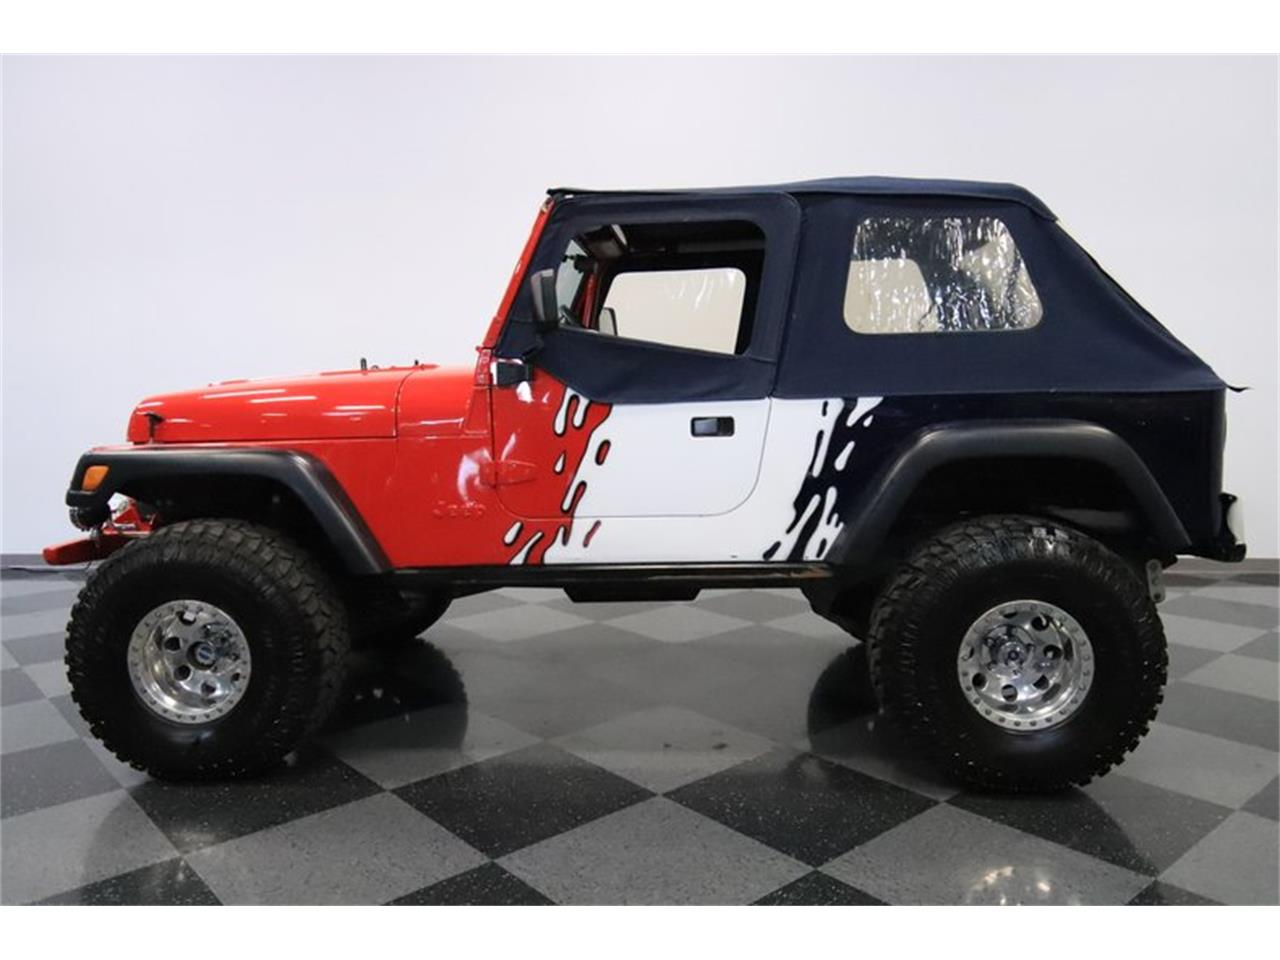 Large Picture of '83 Jeep CJ8 Scrambler located in Mesa Arizona Offered by Streetside Classics - Phoenix - Q5HM